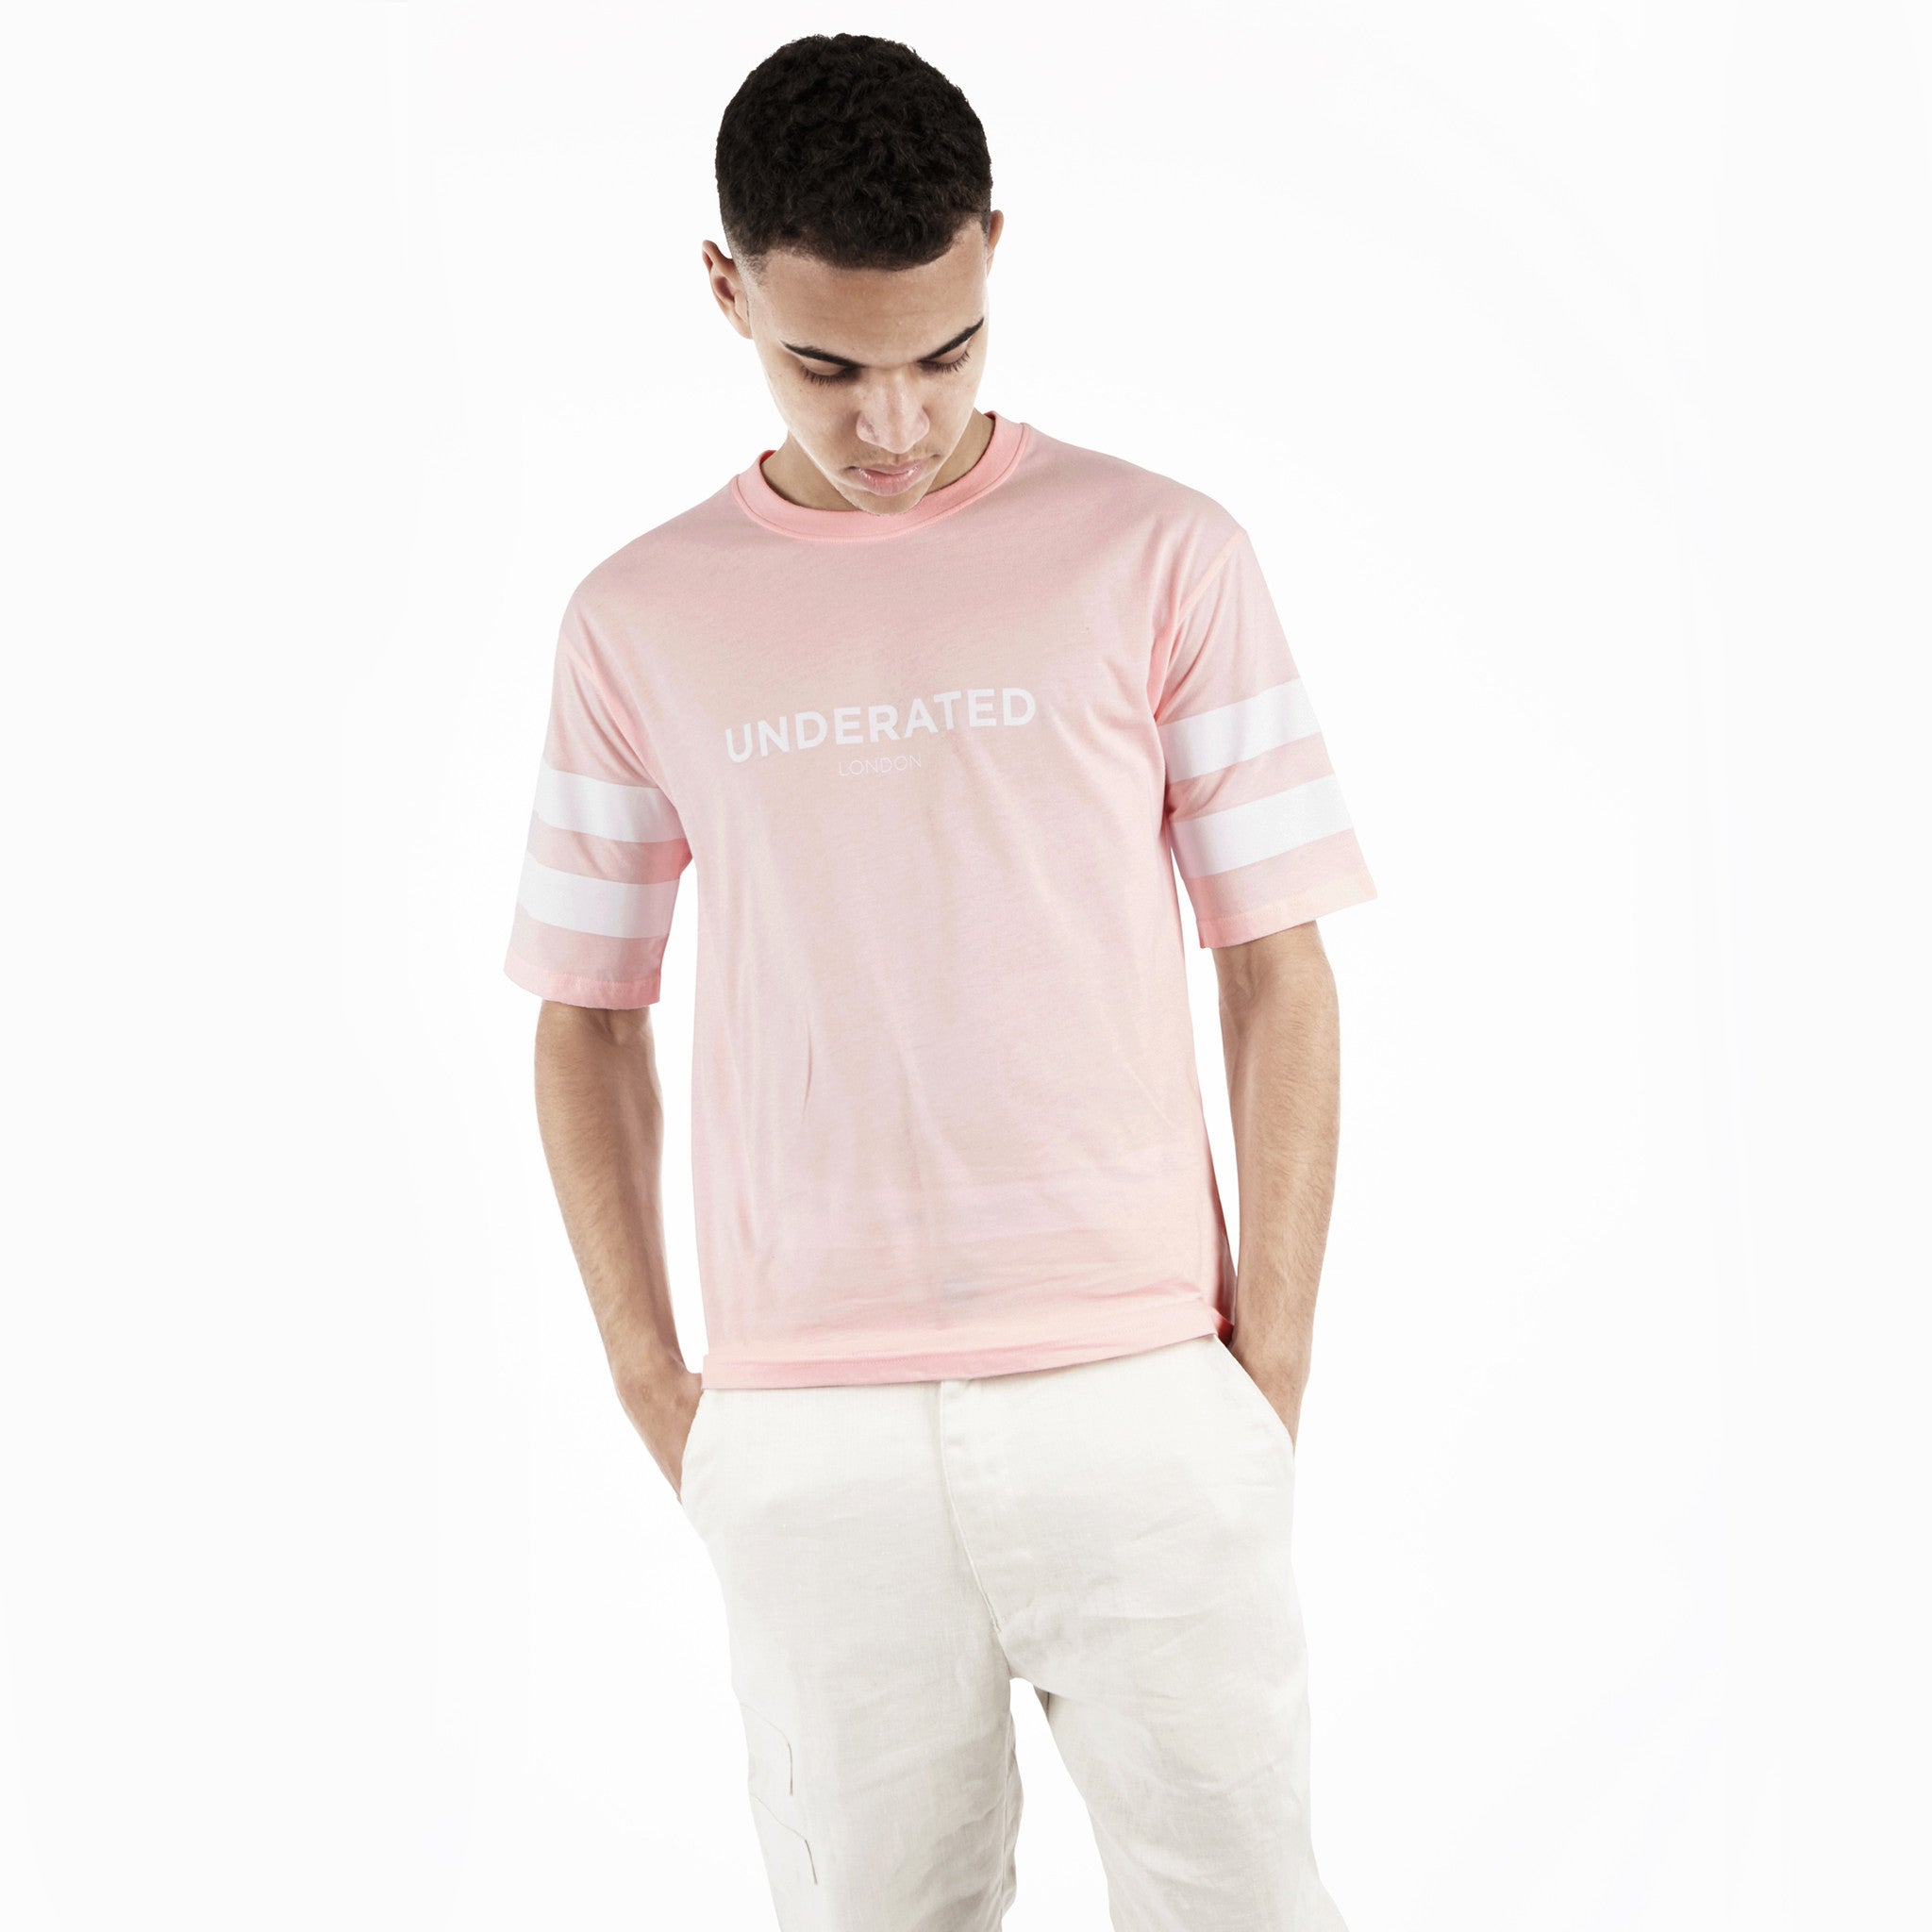 TS404 Print Tee - Pink - underated london - underatedco - 6